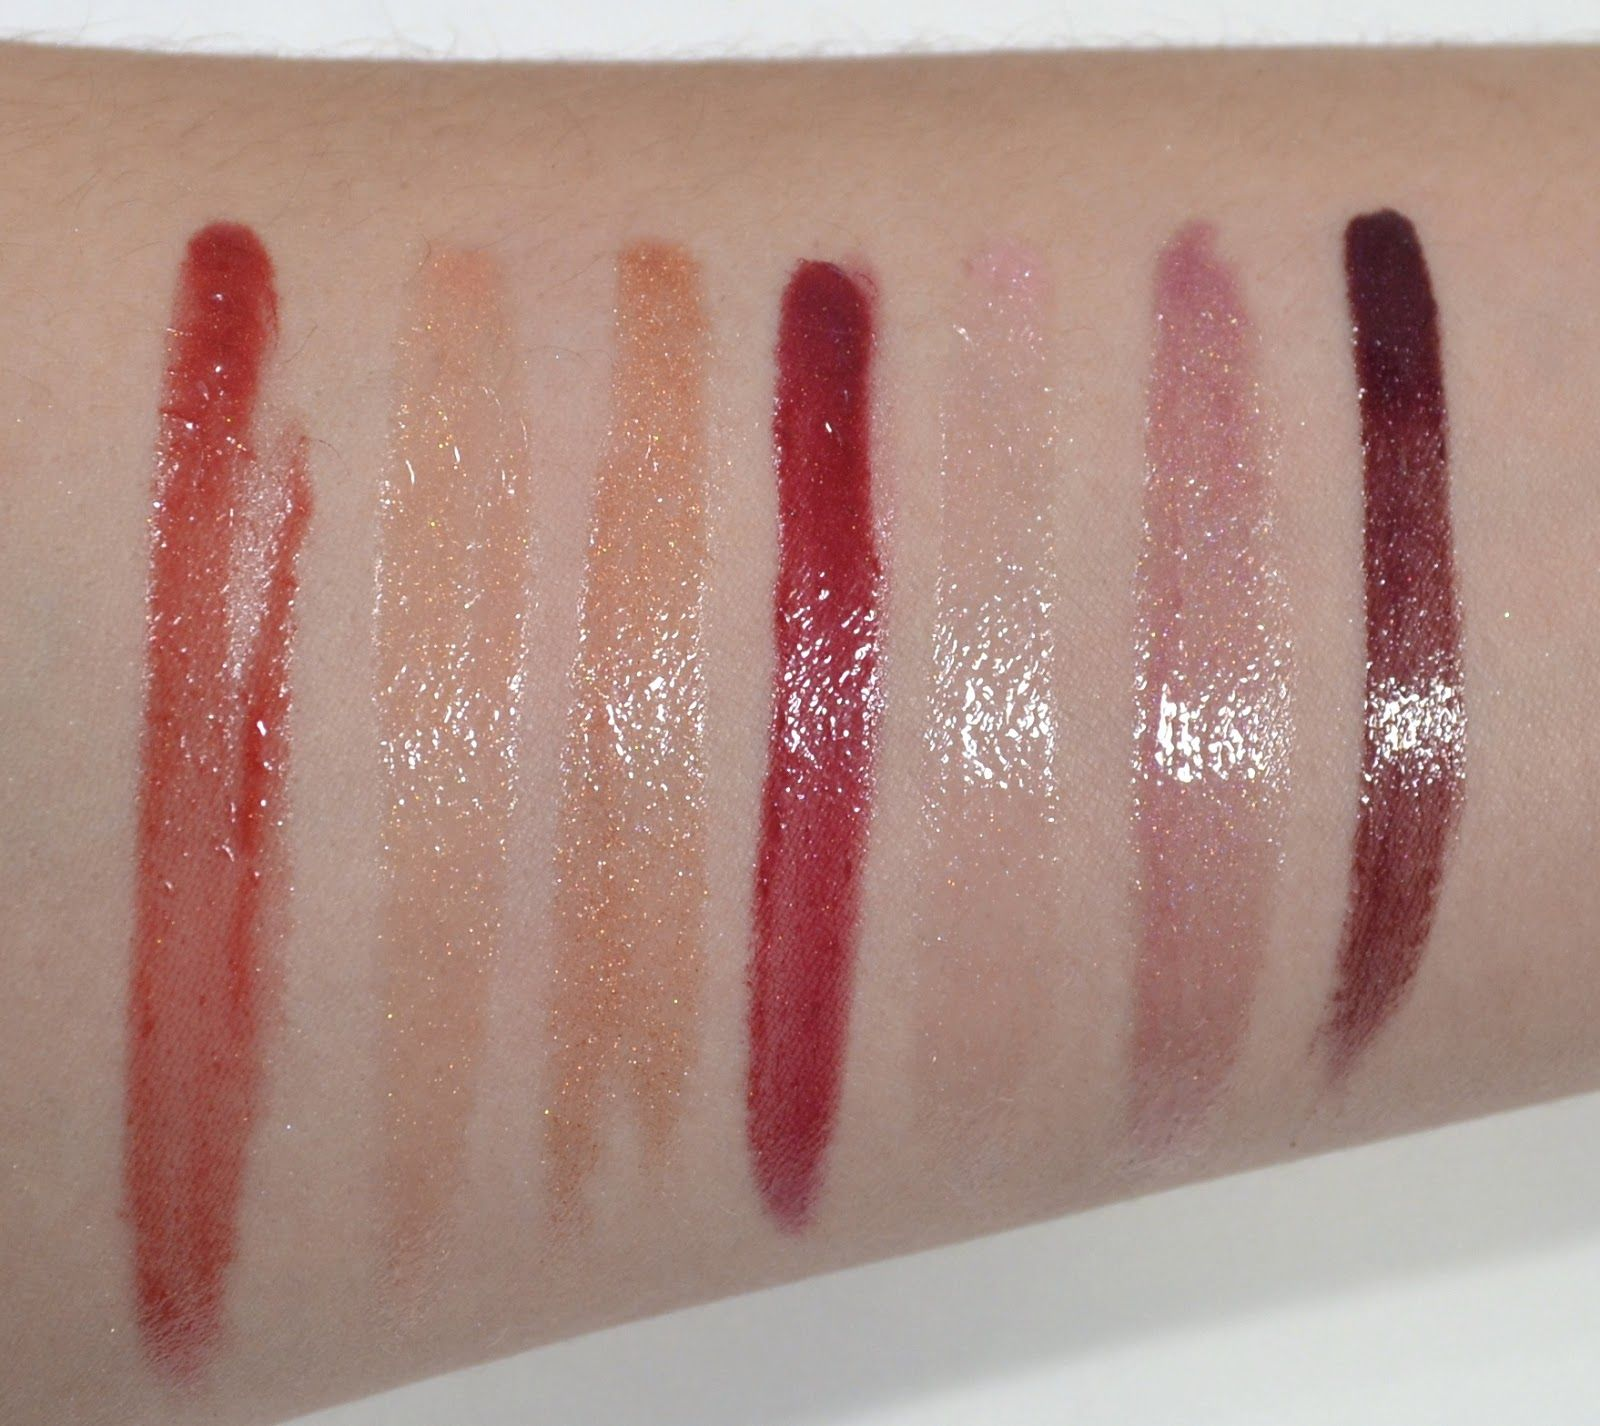 Burt's Bees 100% Natural Lip Glosses Swatches: Evening Glow ...